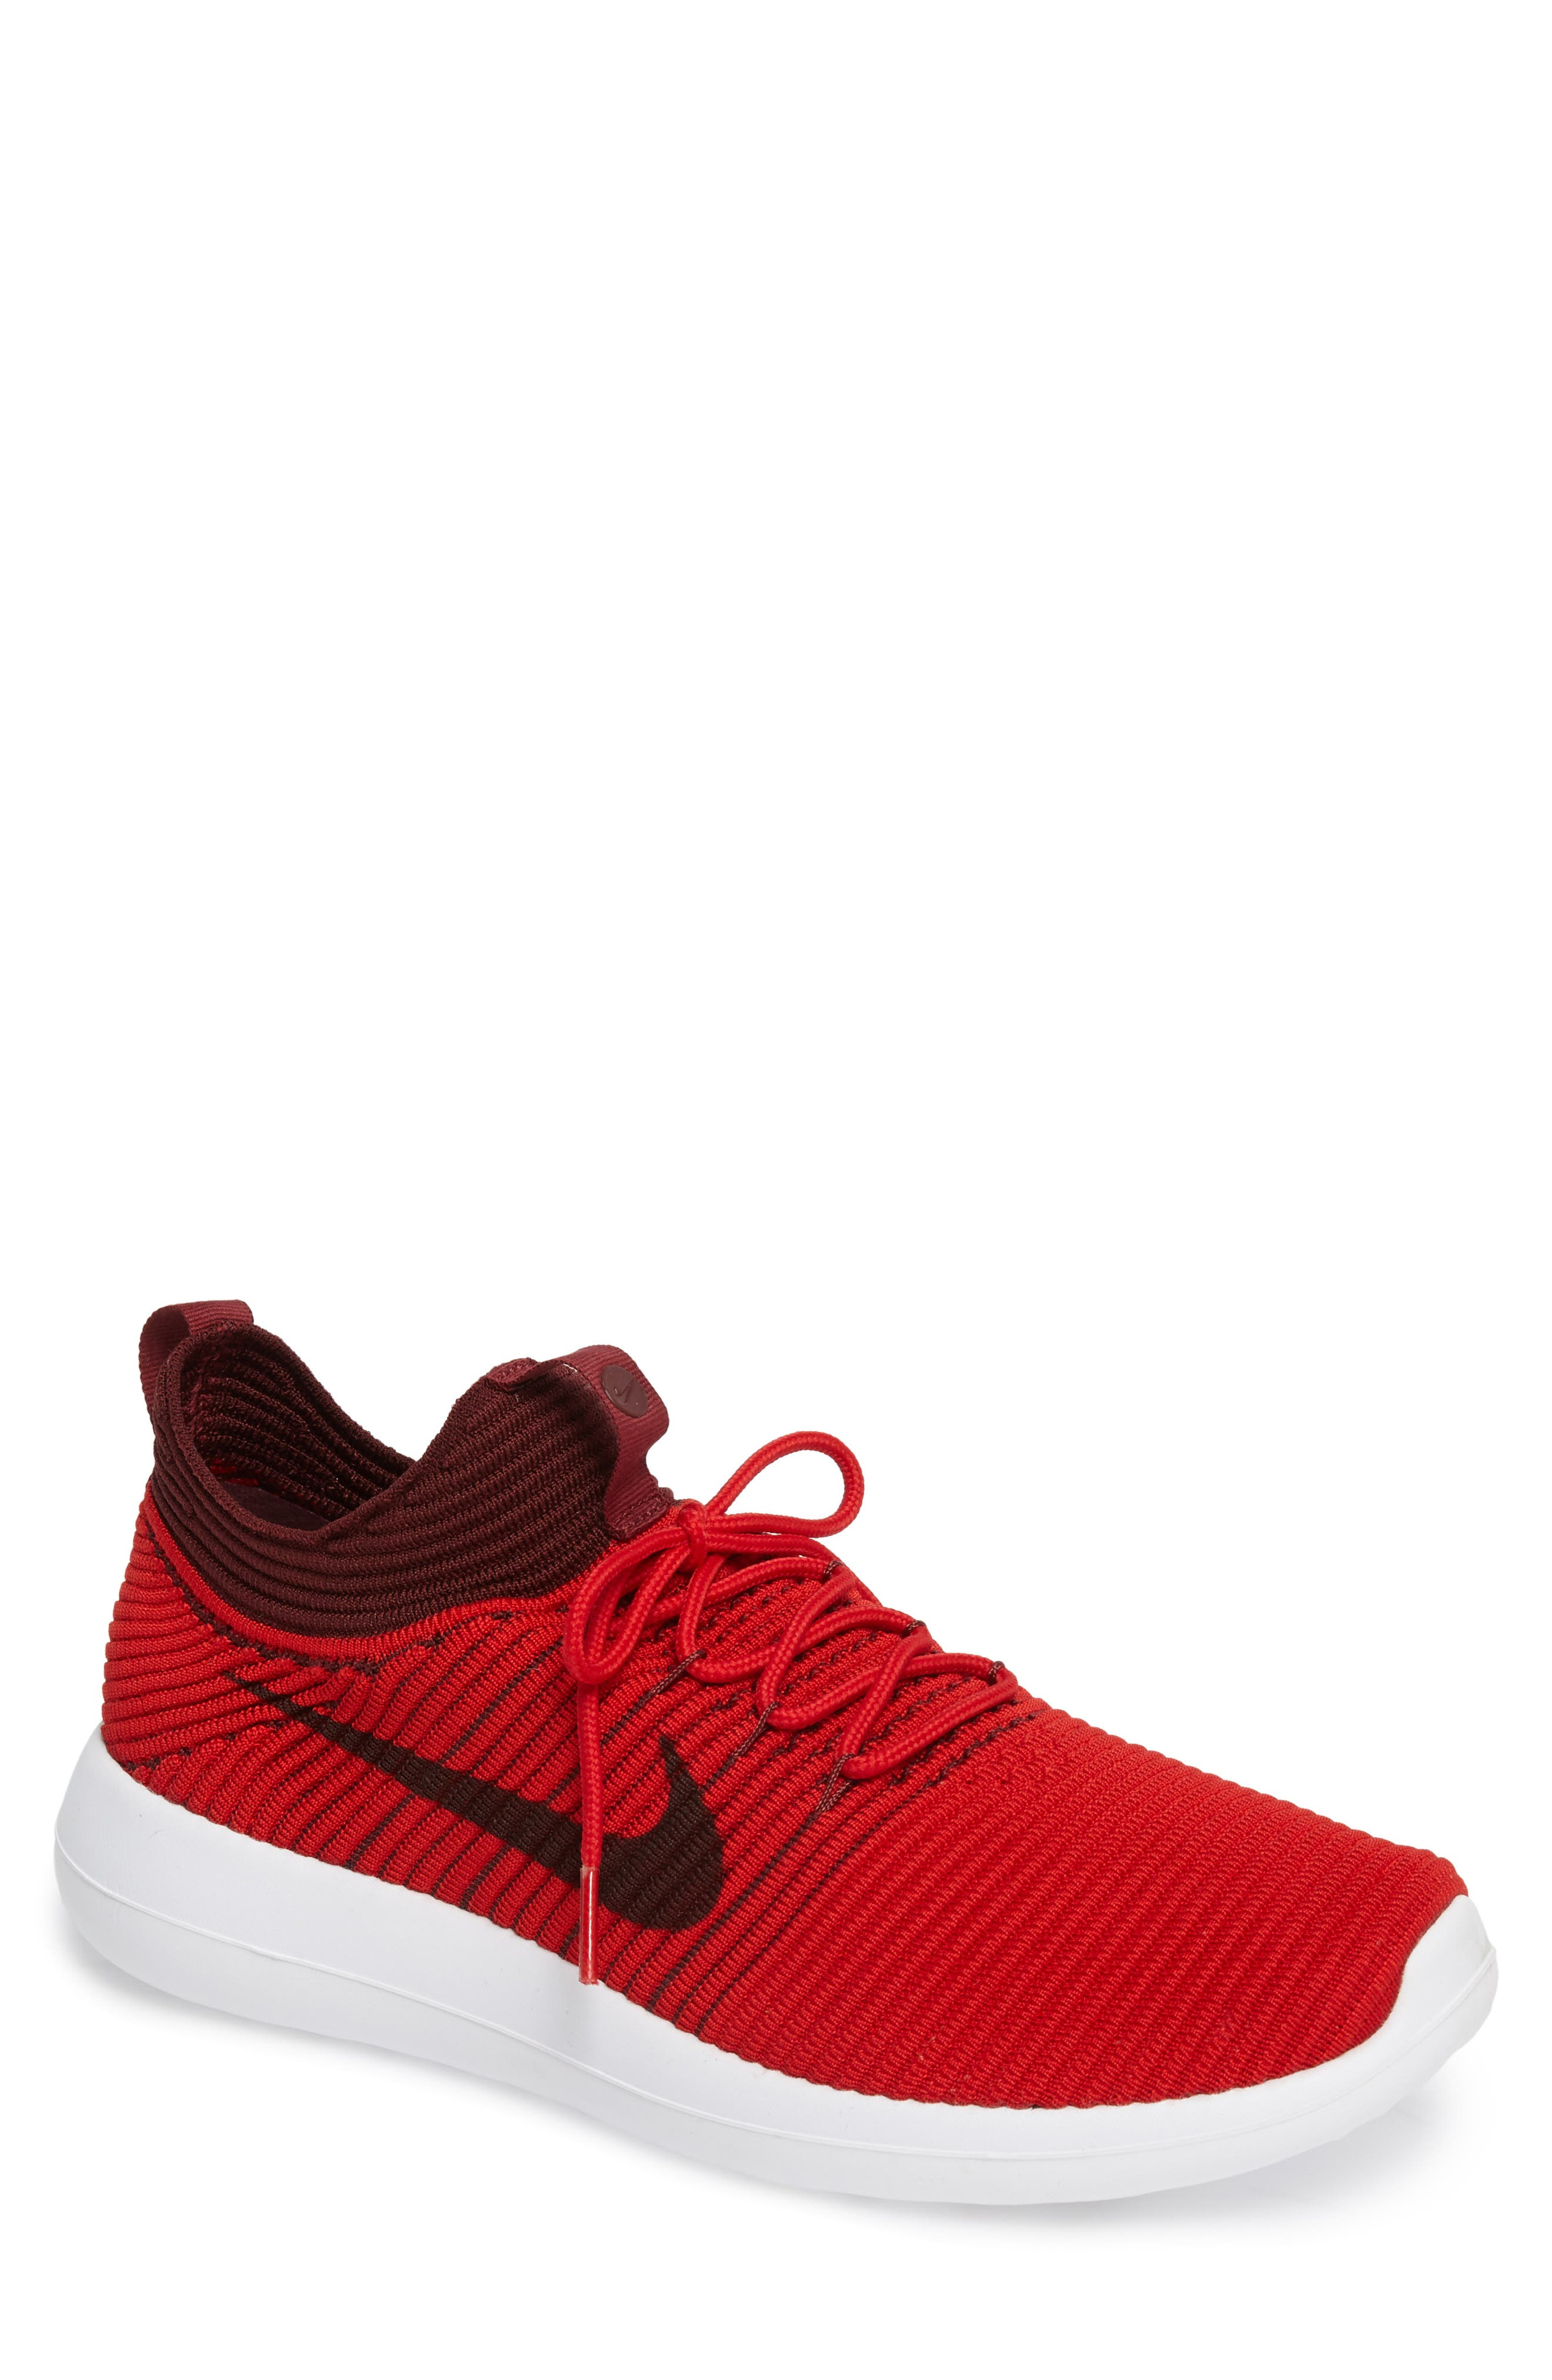 Nike Roshe Two Flyknit V2 Sneaker (Men)